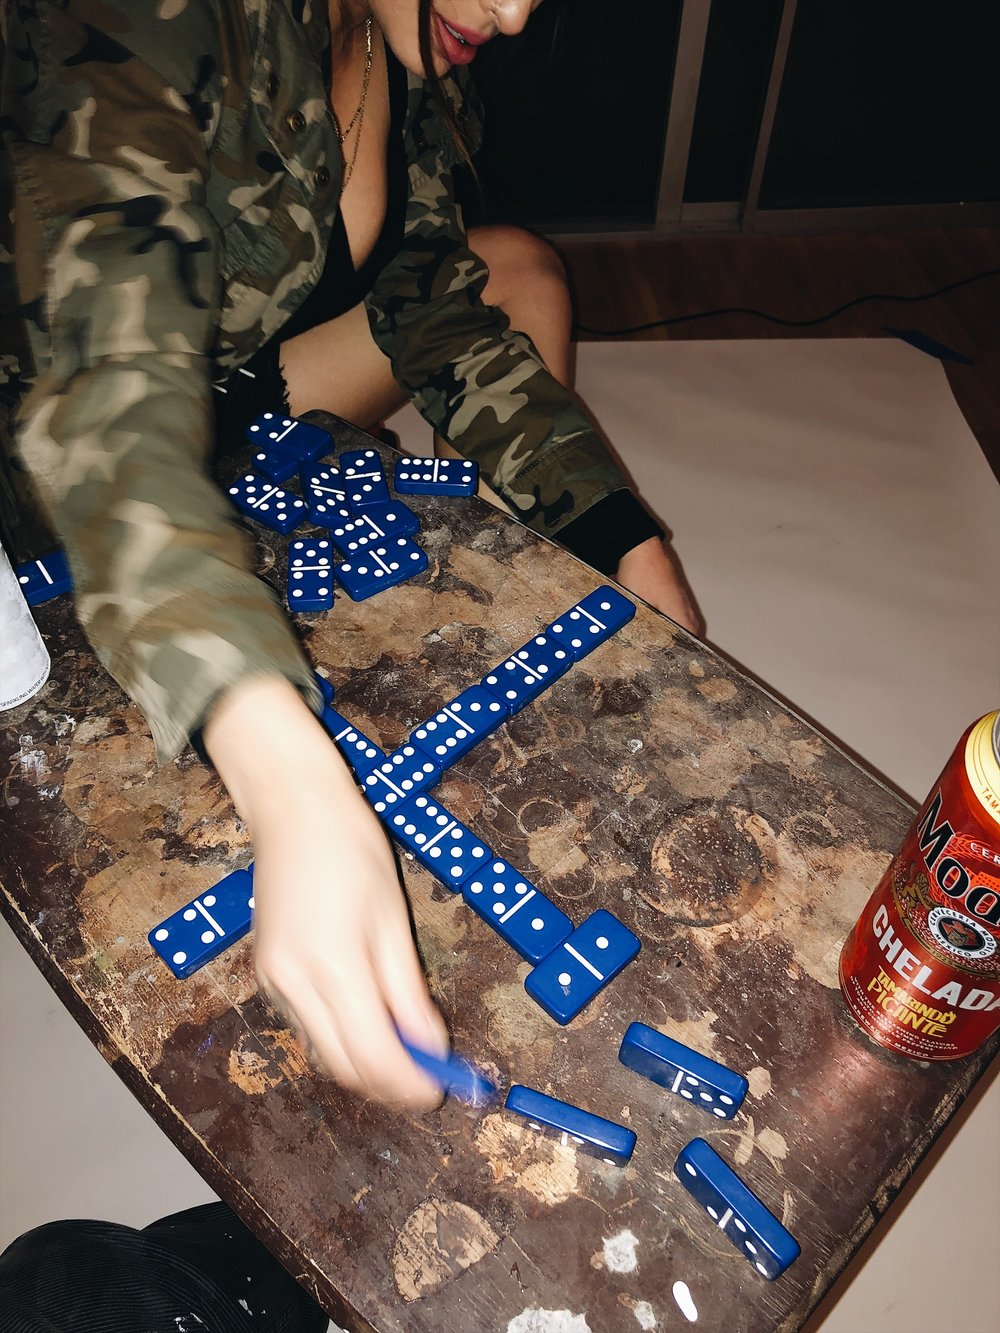 Erika taught me how to play dominos.